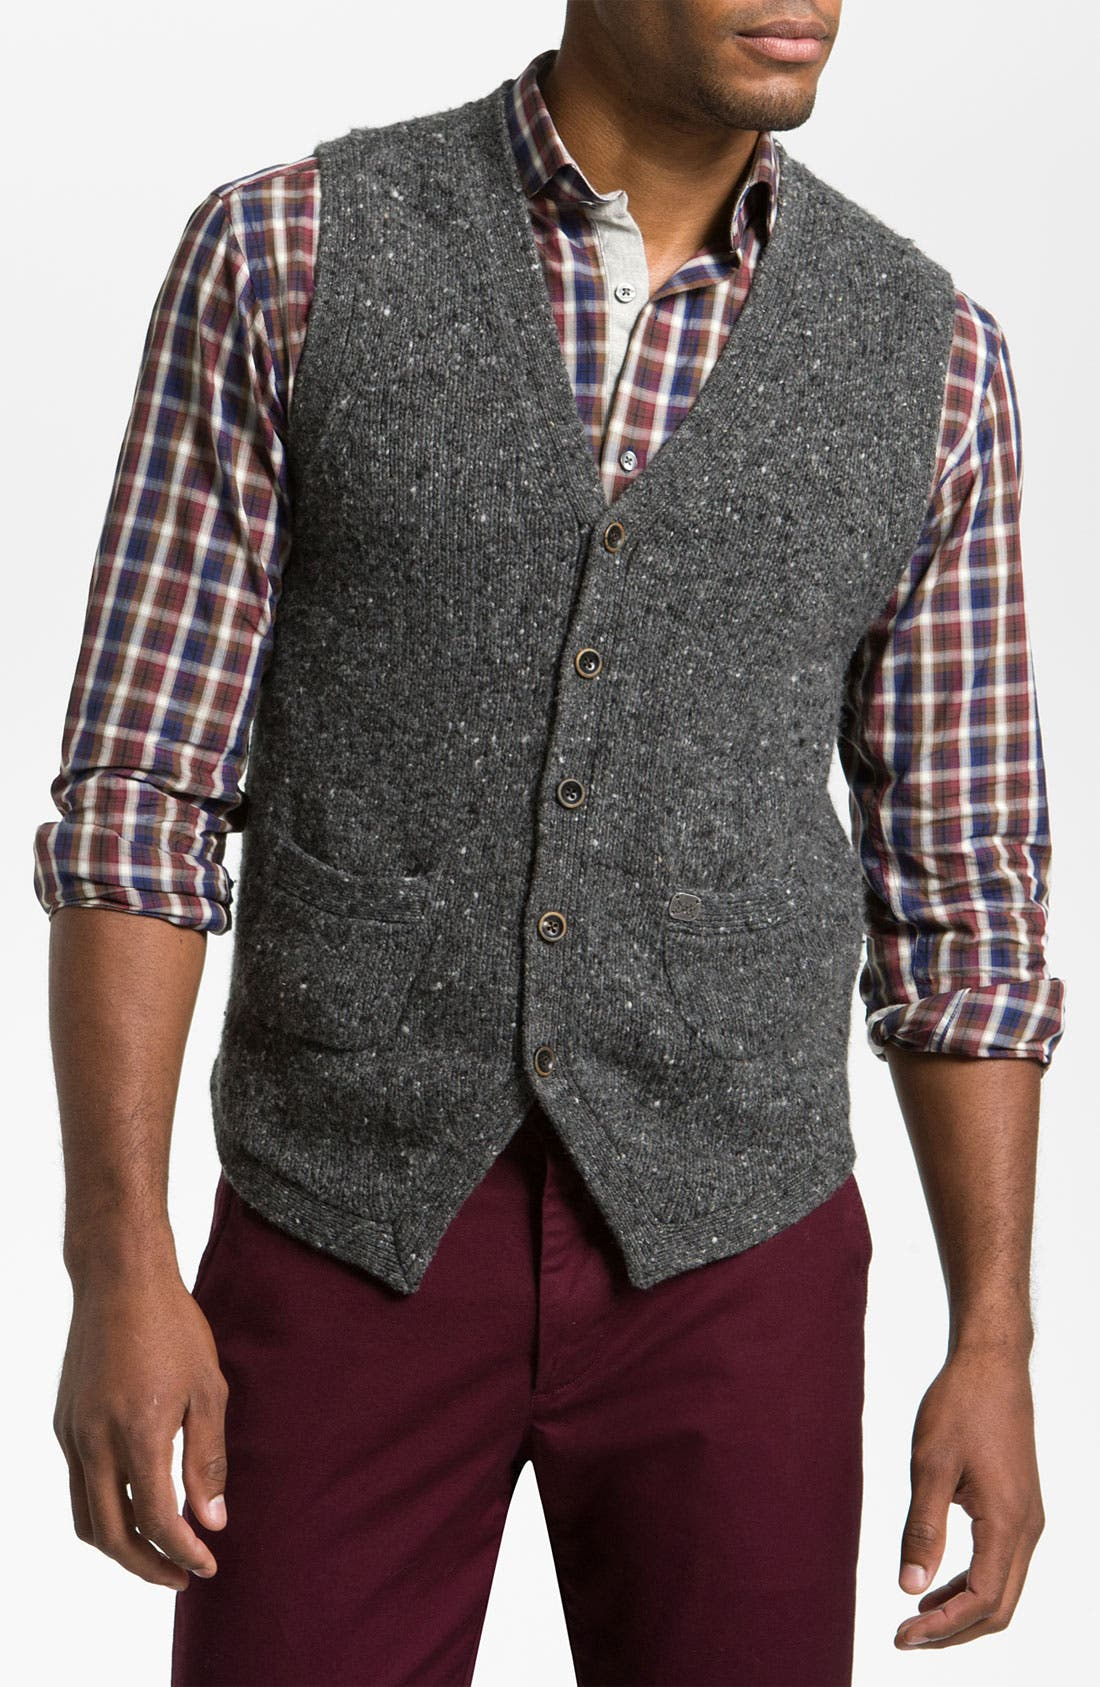 Alternate Image 1 Selected - Hickey Freeman 'Donegal' Merino Blend Sweater Vest